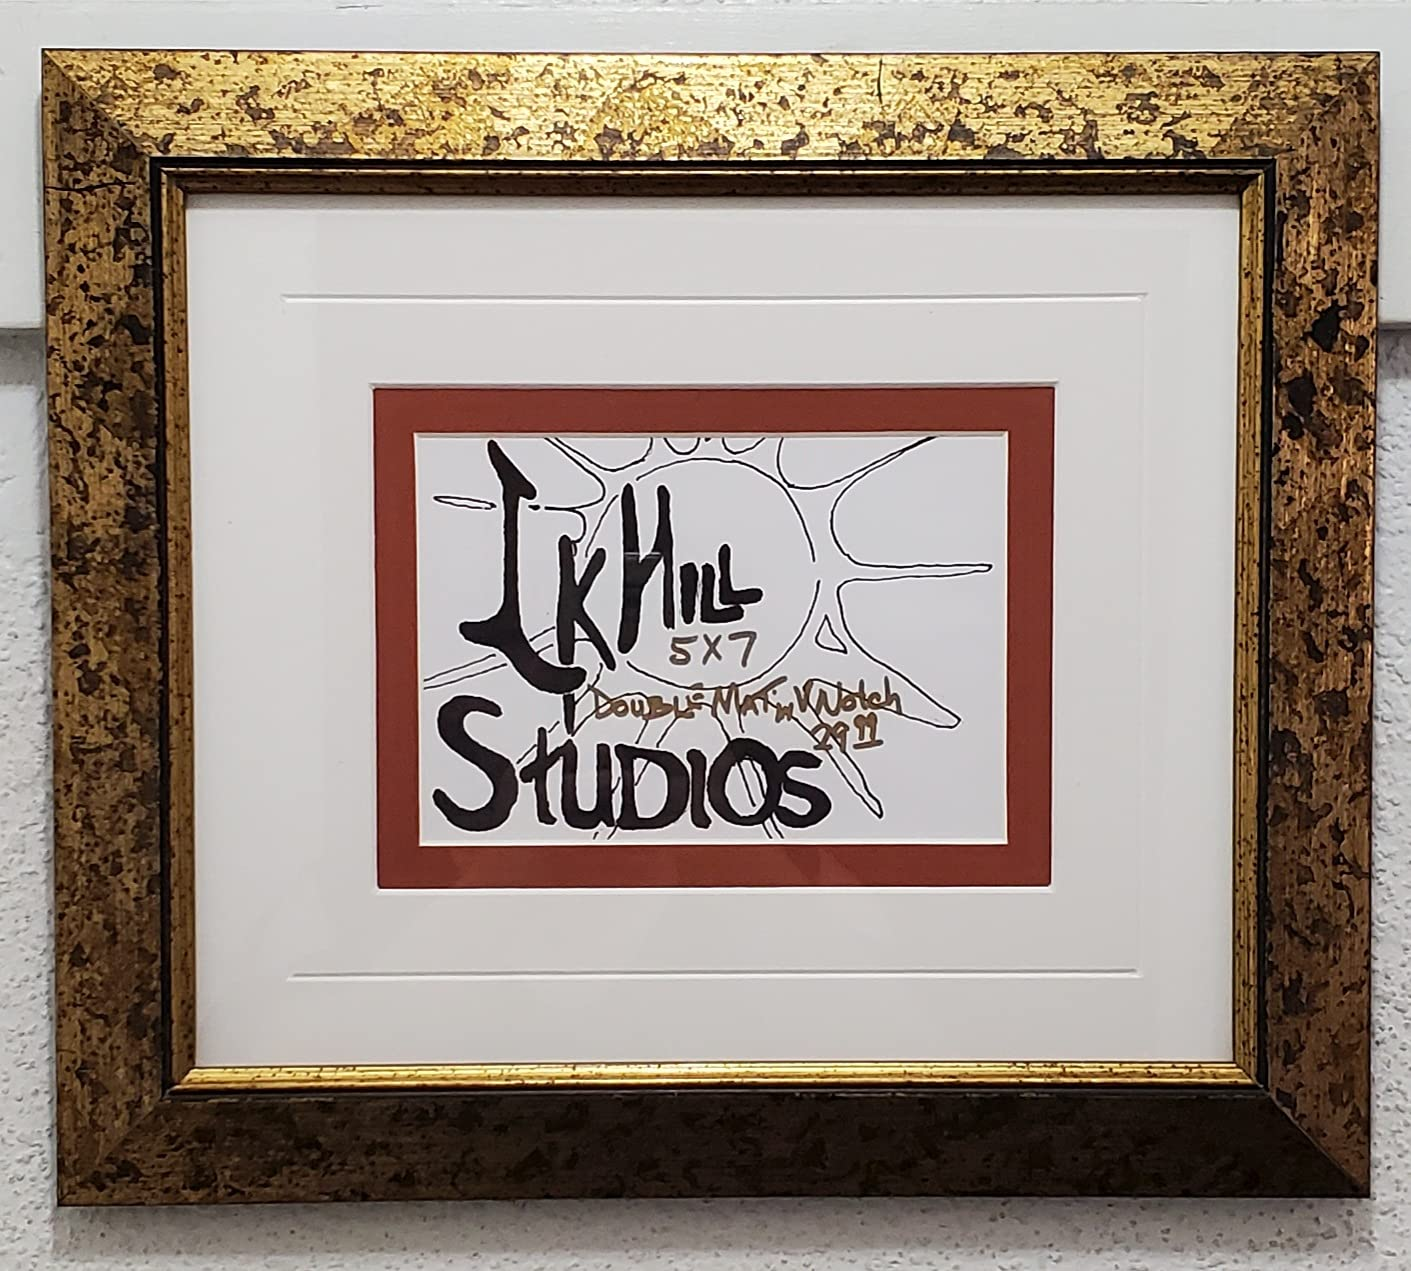 Gold Speckled Picture Frame handmade K Baltimore Mall Hill Larry Boston Mall Studios by